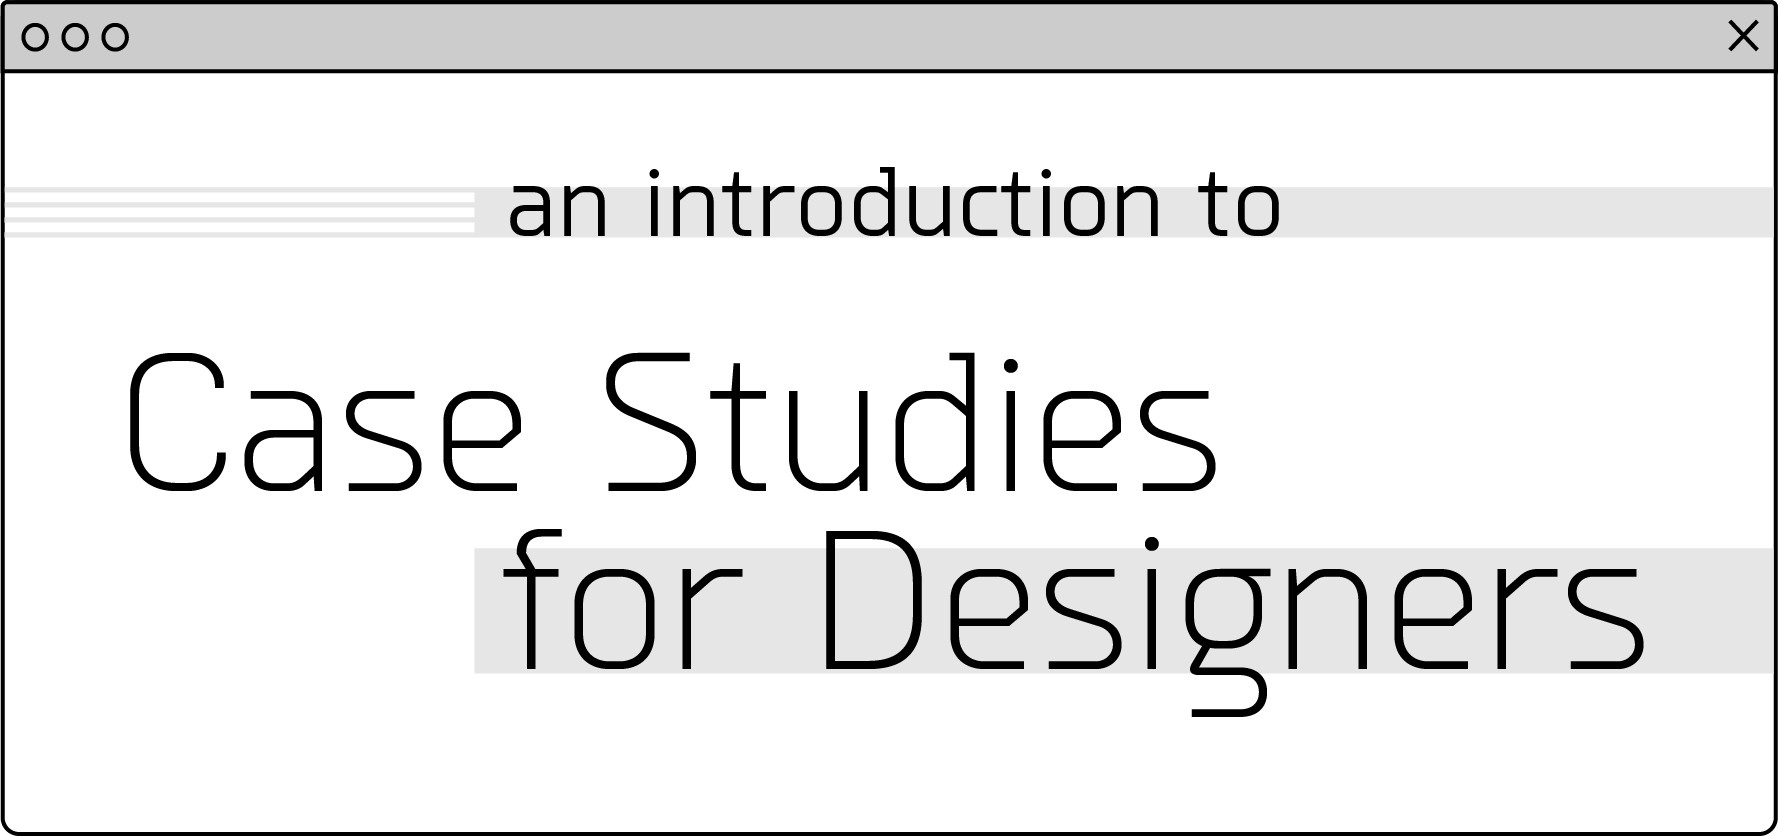 An Introduction to Case Studies for Designers